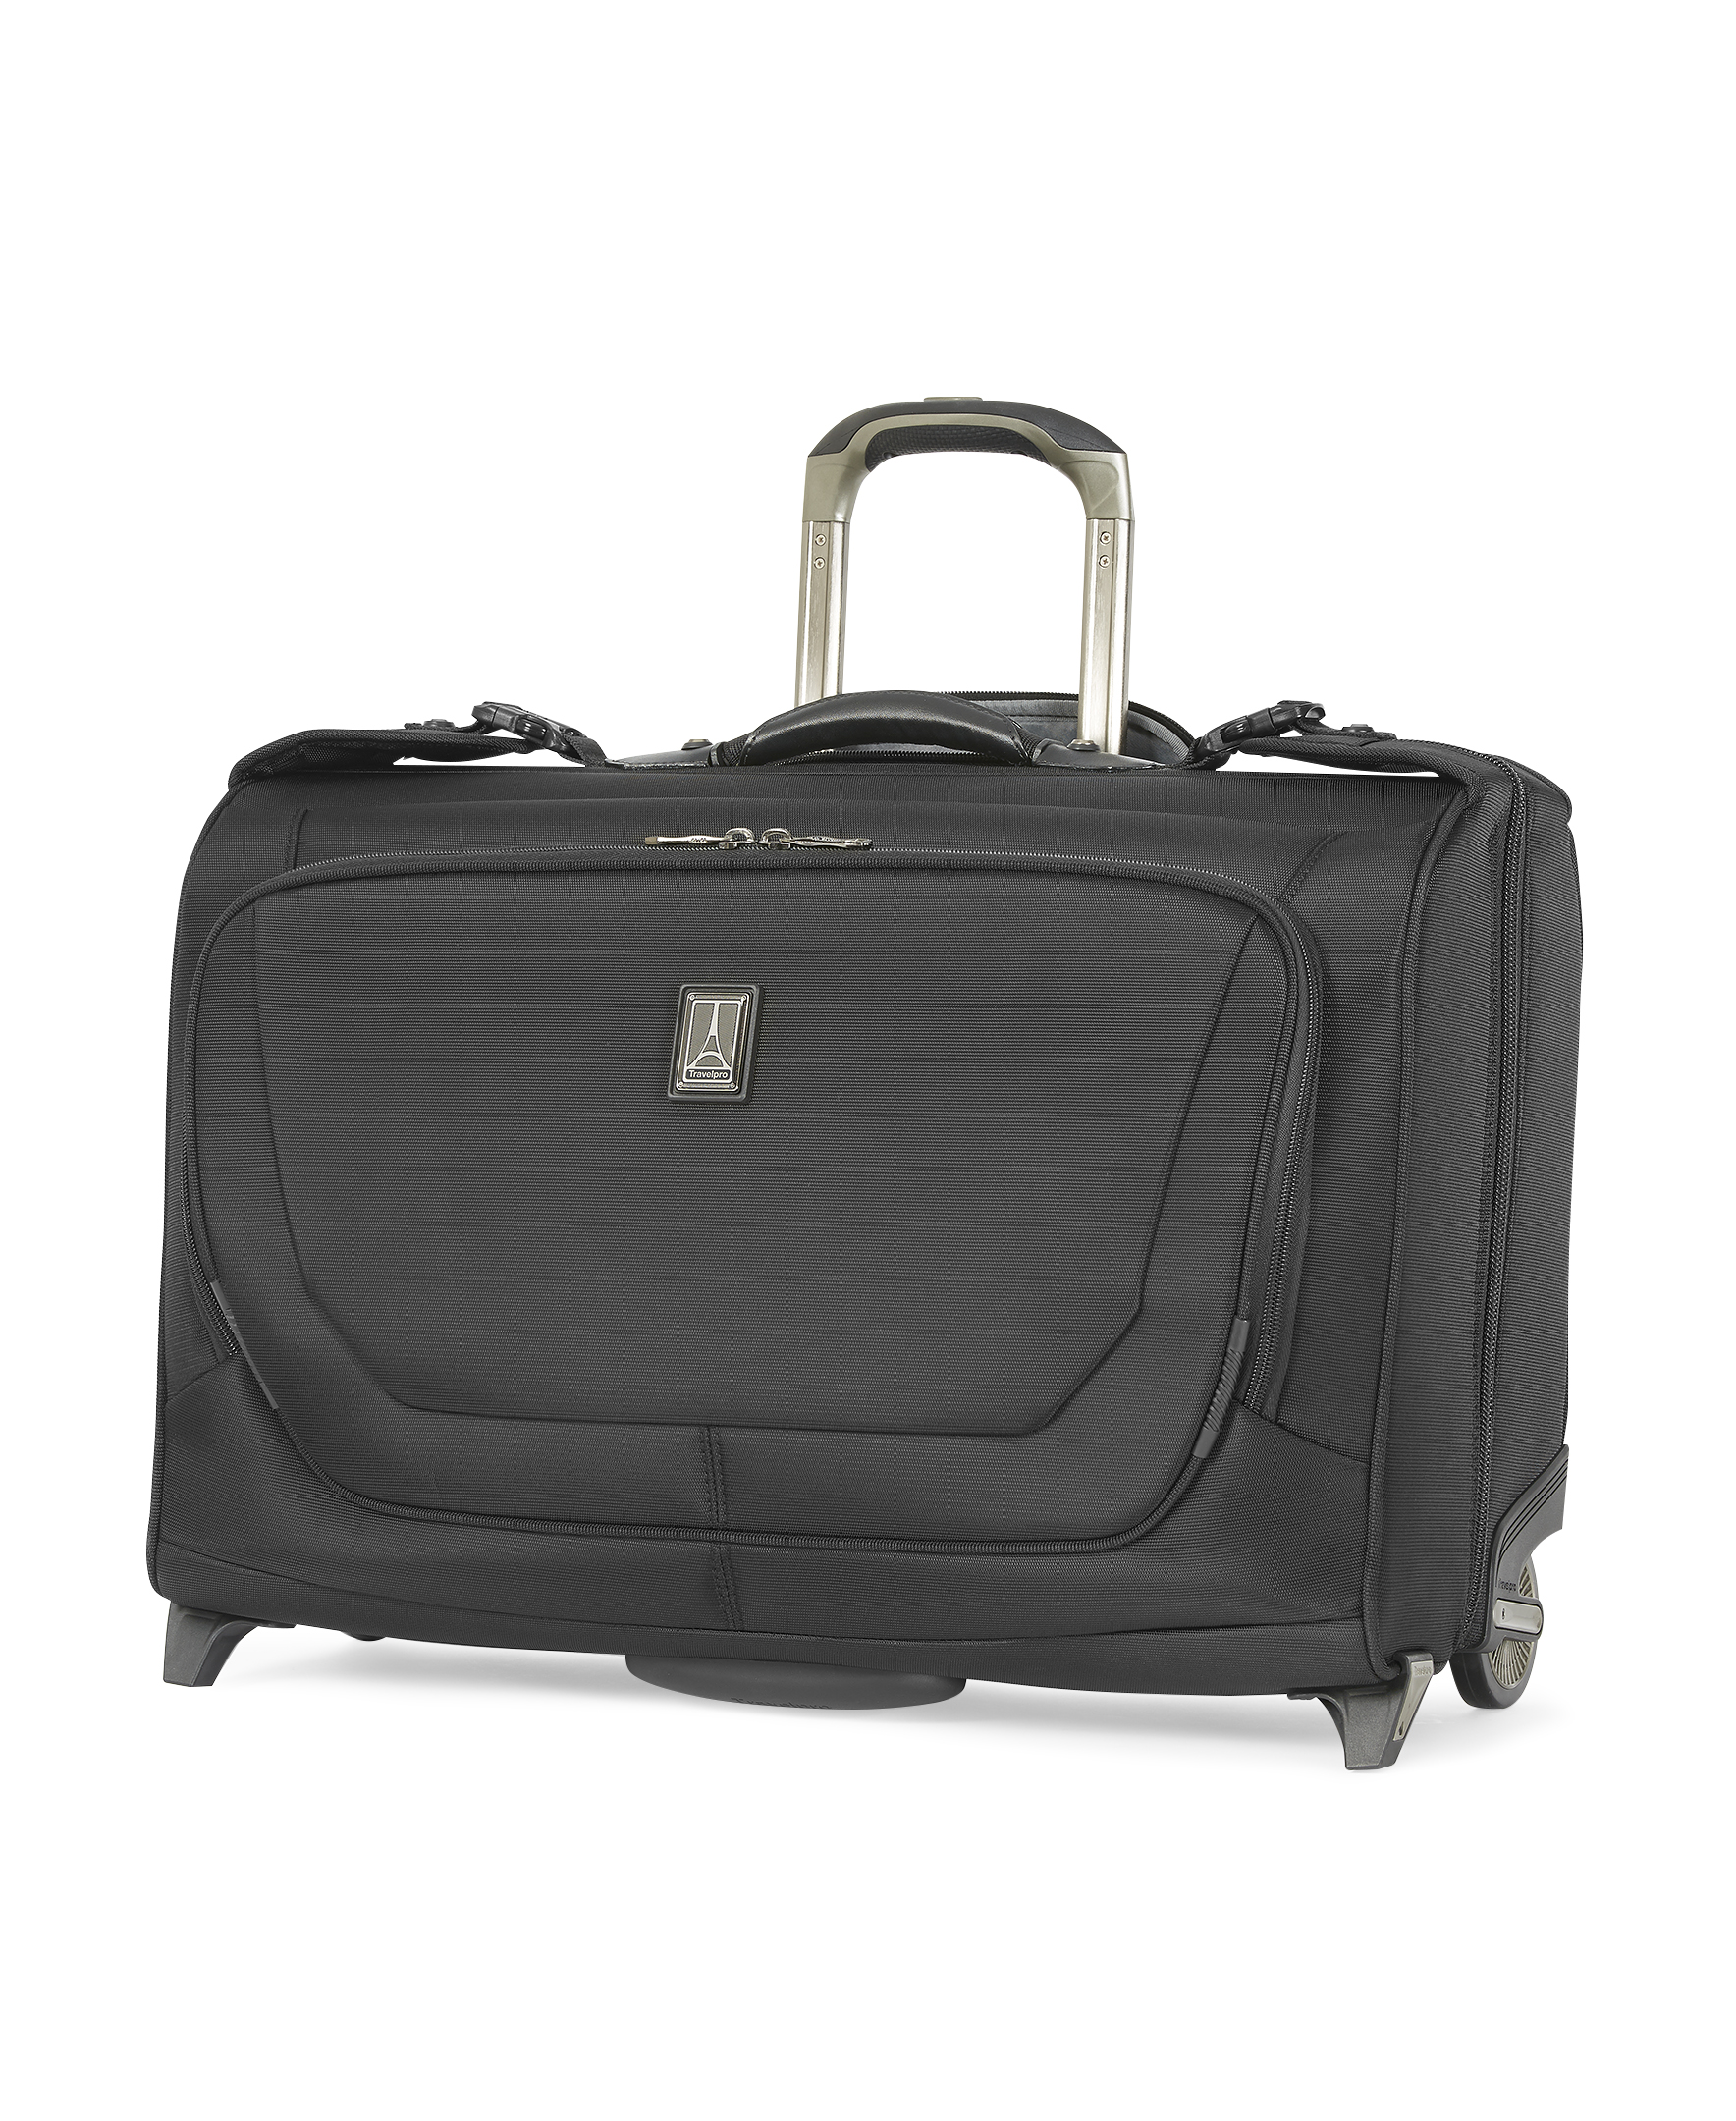 garment bag Archives - Travelpro® Luggage Blog   Travelpro® Luggage Blog 21744923712e0